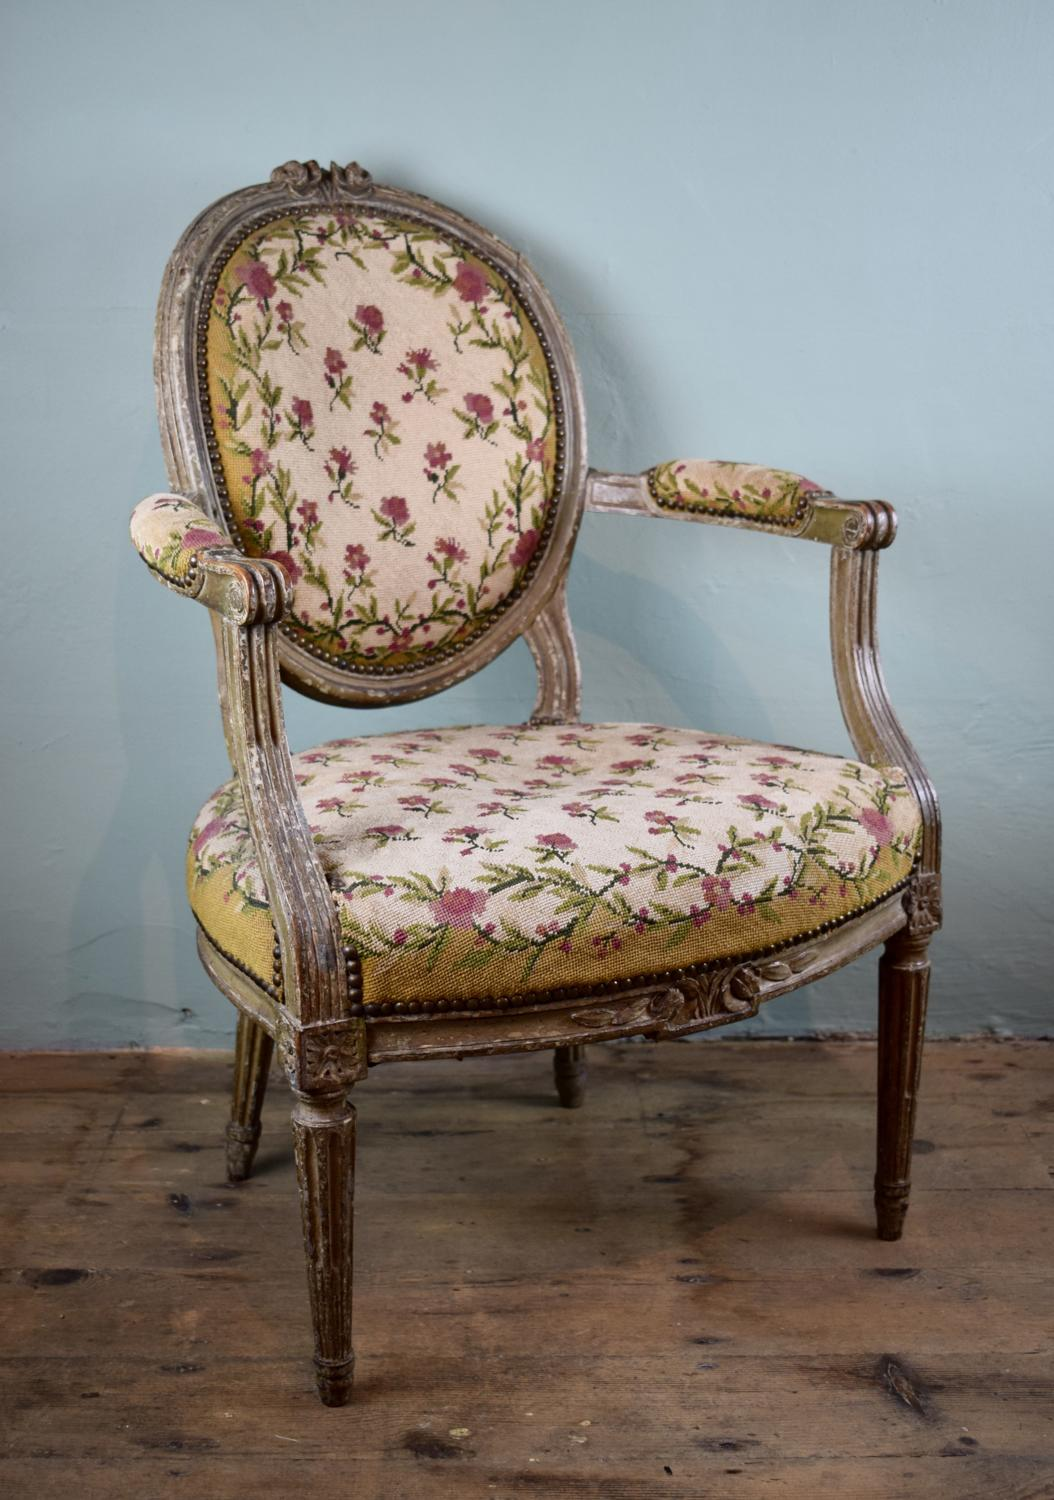 Antique French Fauteuil in Original Paint with Needlework Upholstery